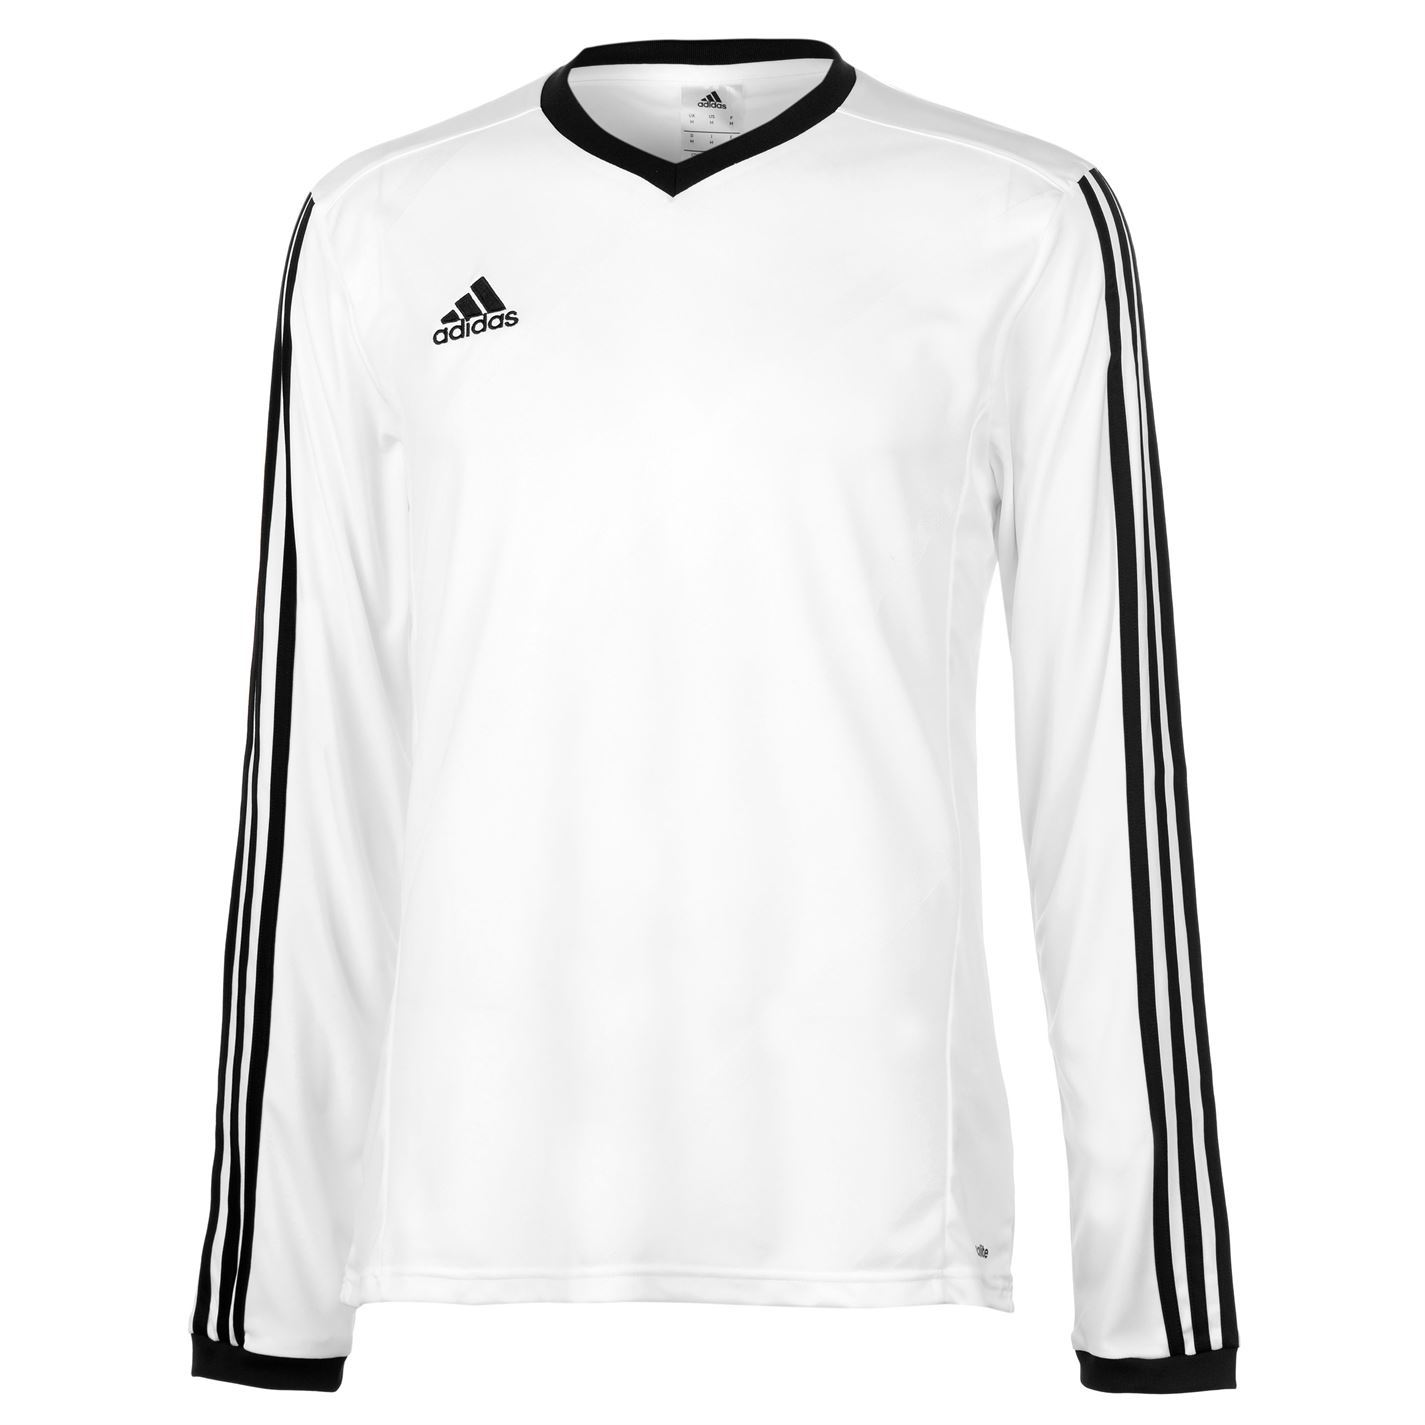 953292b7f01 adidas Tabela 14 Long Sleeve Football Jersey Mens Soccer Shirt Top T ...